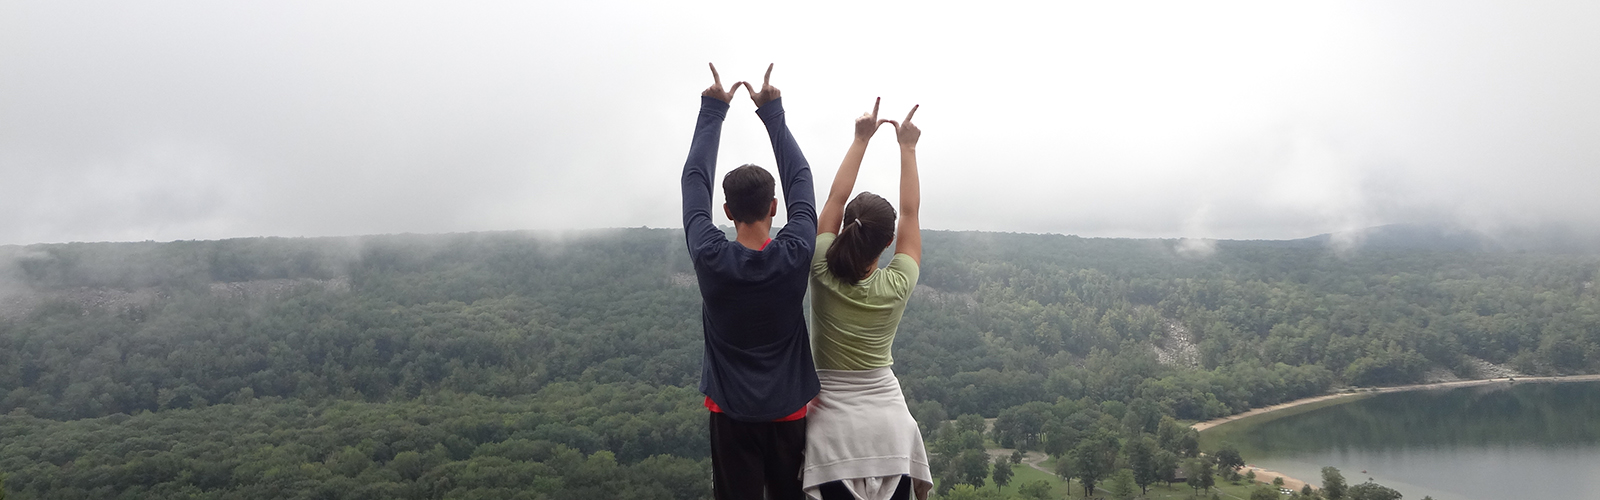 VISP students make the sign of 'W' while overlooking a scenic view.